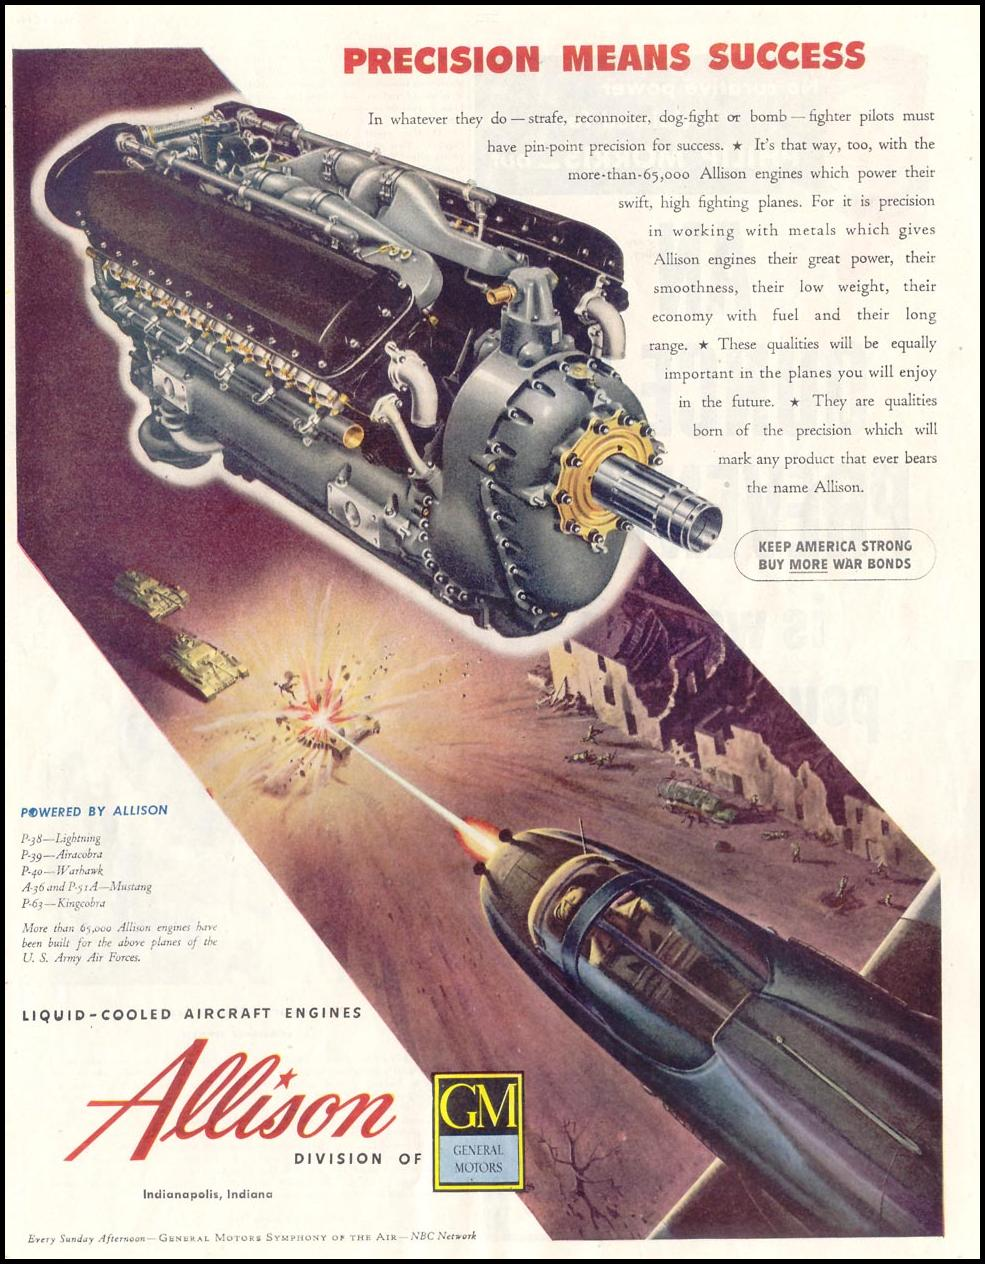 ALLISON LIQUID-COOLED AIRCRAFT ENGINES